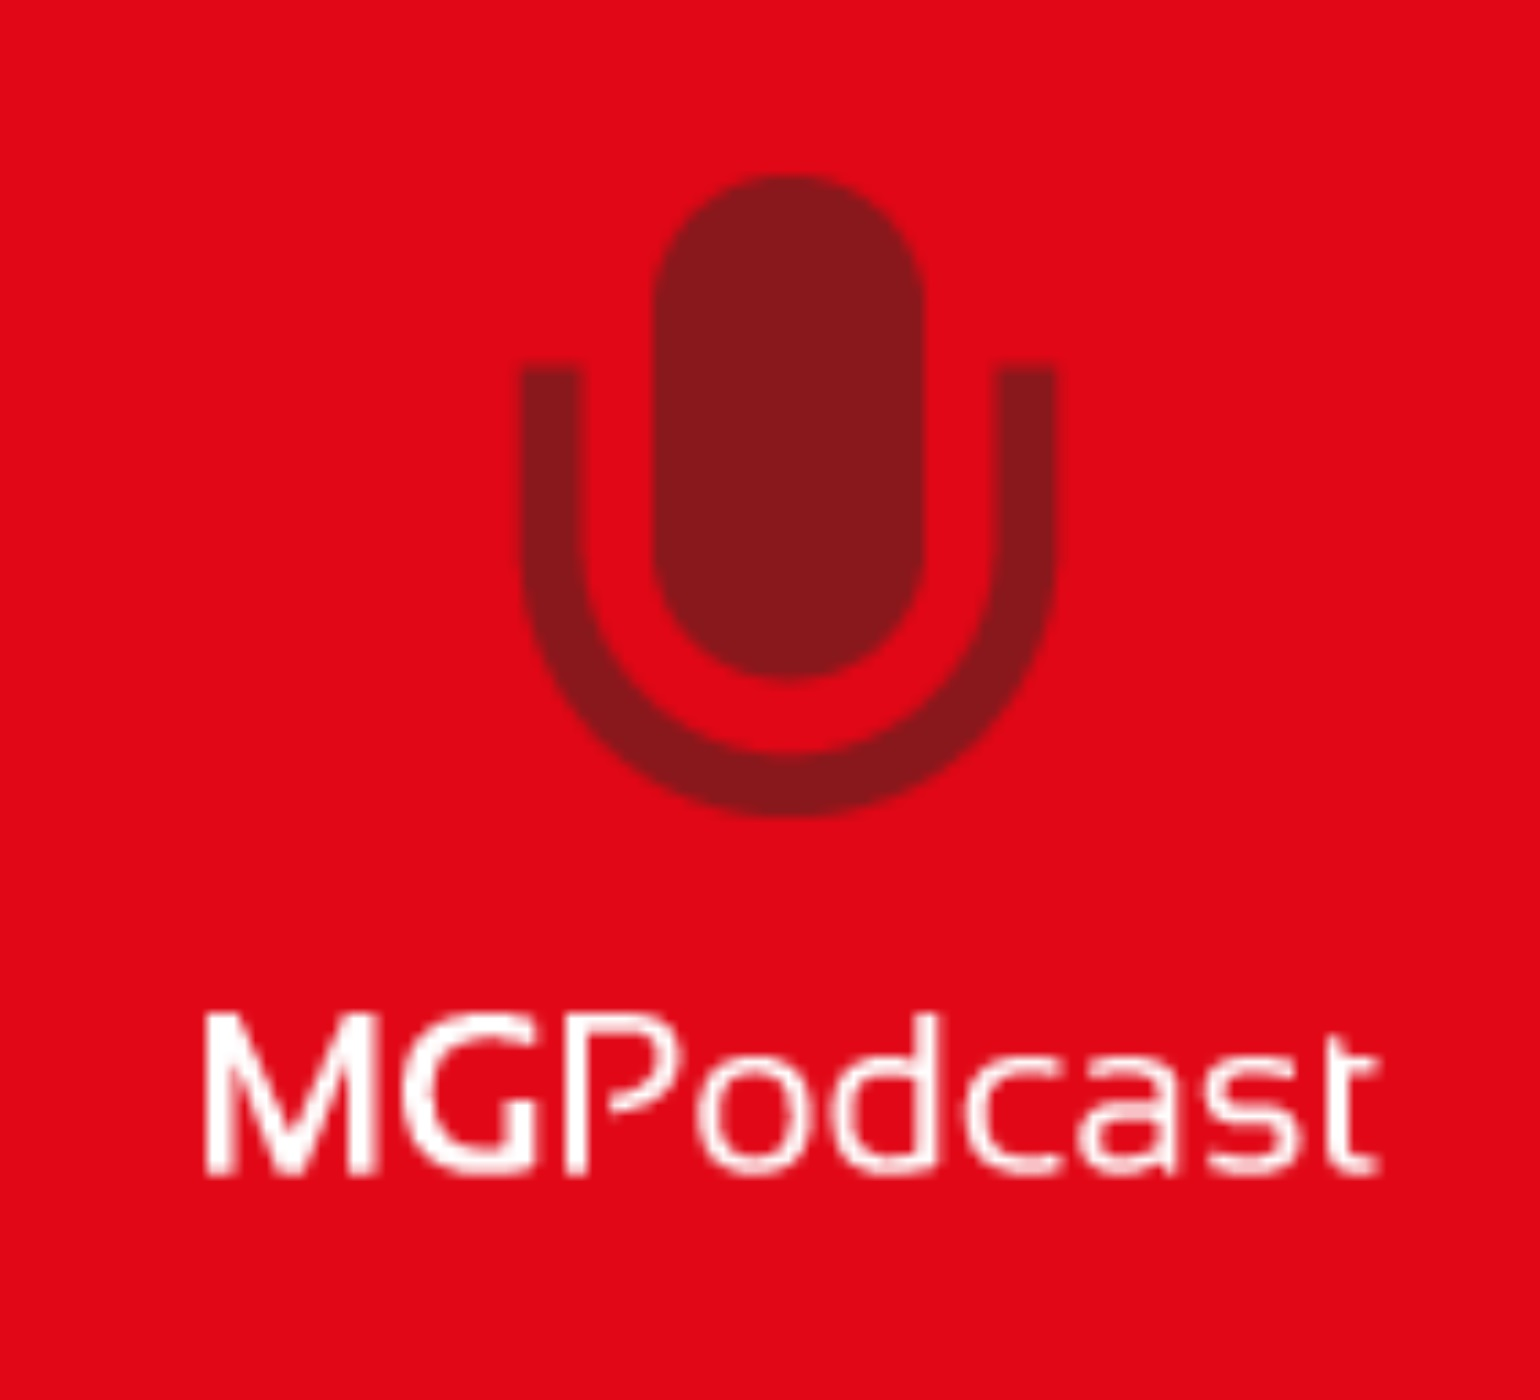 MG Podcast